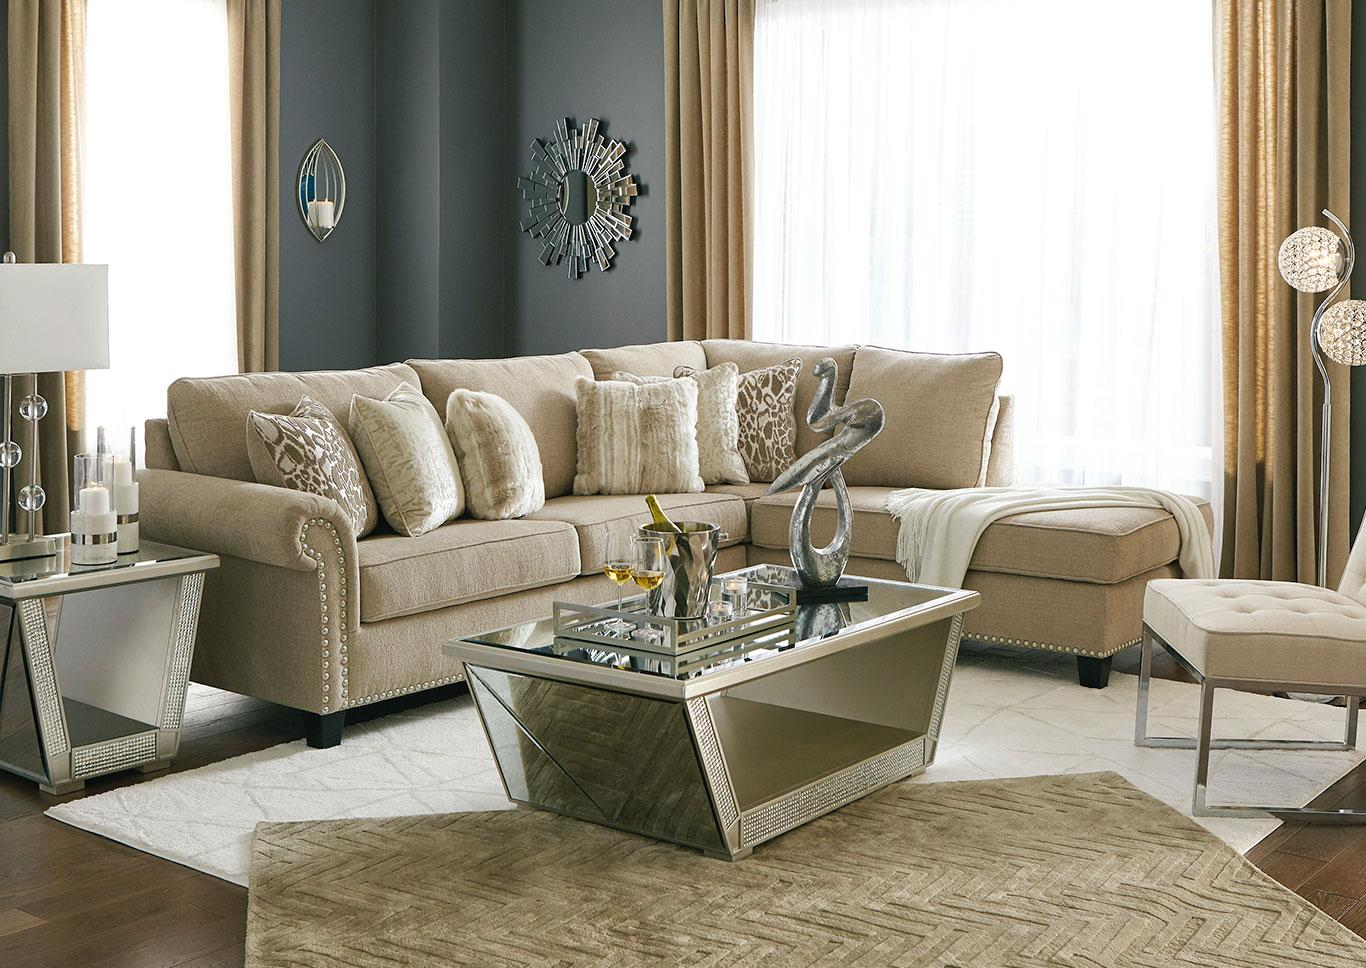 Ashley 40401 Dovemont 2 Piece Sectional,InStore ONLY